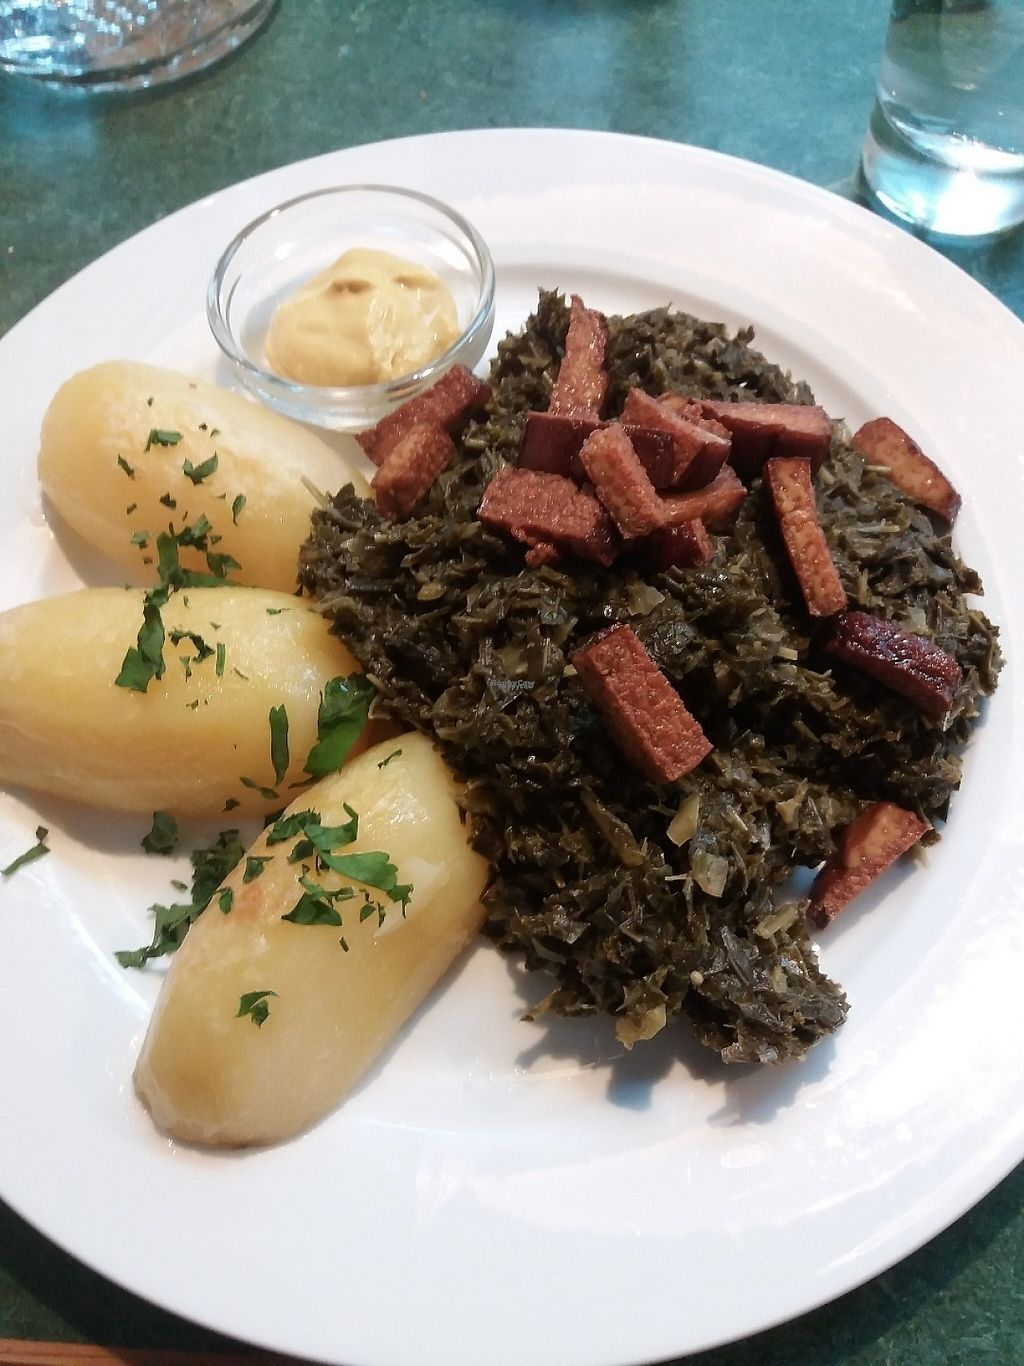 """Photo of CLOSED: Molly & Alf  by <a href=""""/members/profile/Smoelfine"""">Smoelfine</a> <br/>green cabbage, salty potatoes and smoked tofe <br/> December 16, 2016  - <a href='/contact/abuse/image/73367/202005'>Report</a>"""